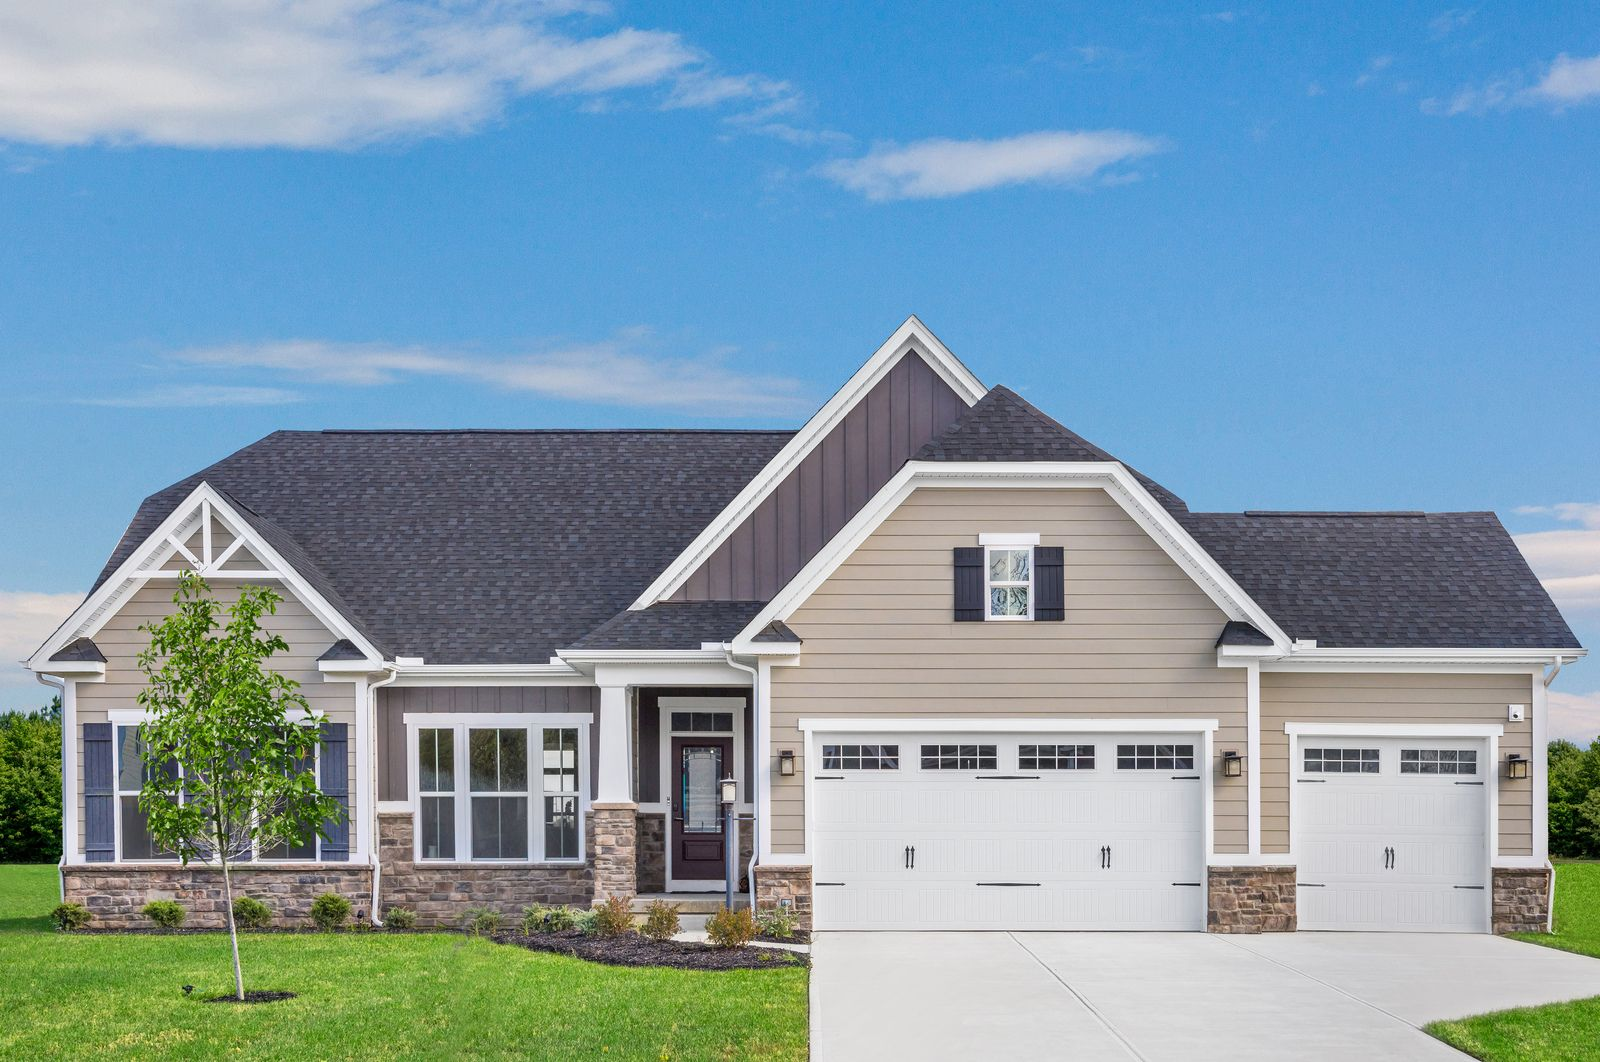 WELCOME HOME TO HIGHLANDS AT TERRA ALTA:Ranch homes w/ scenic views & full basements—3-car garage available! Future pool & clubhouse, close to downtown Delaware & Polaris. From mid $300s.Click Here to Schedule Your Visit Today!